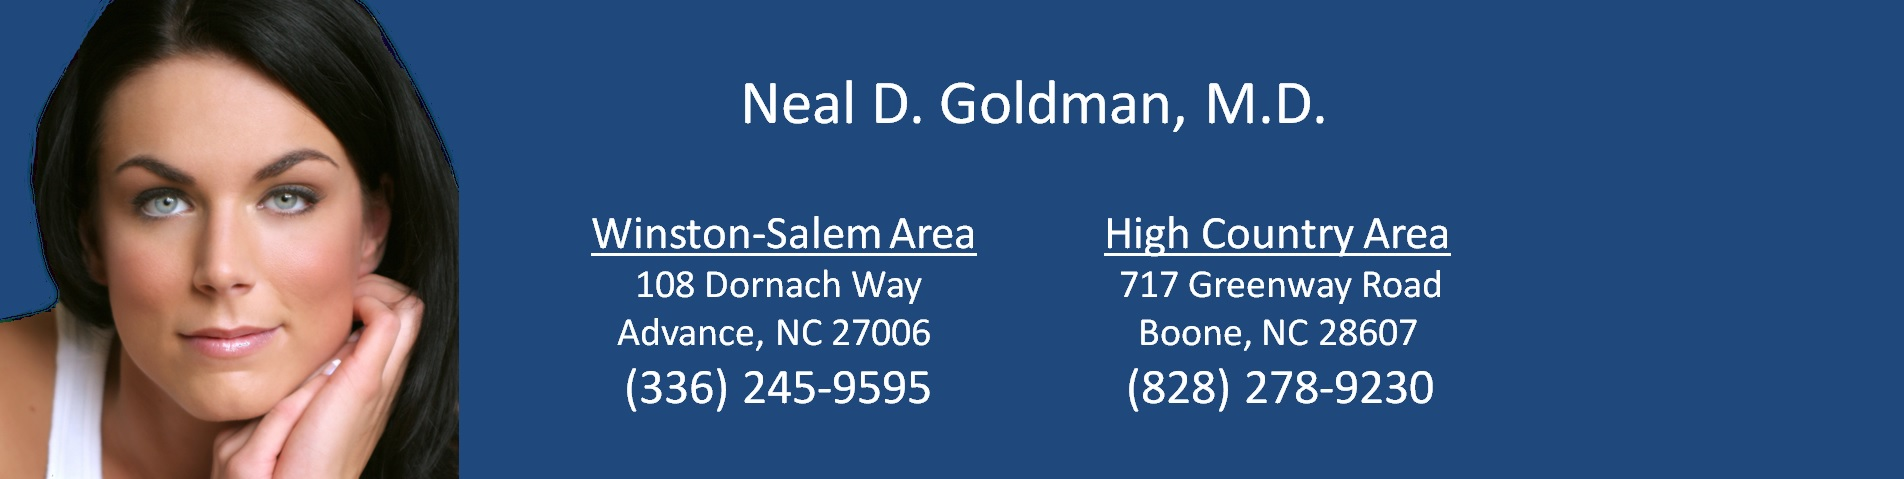 Facial Plastic Surgery - Neal Goldman MD - Goldman Center - 108 Dornach Way, Advance, NC and 717 Greenway Road, Boone, NC